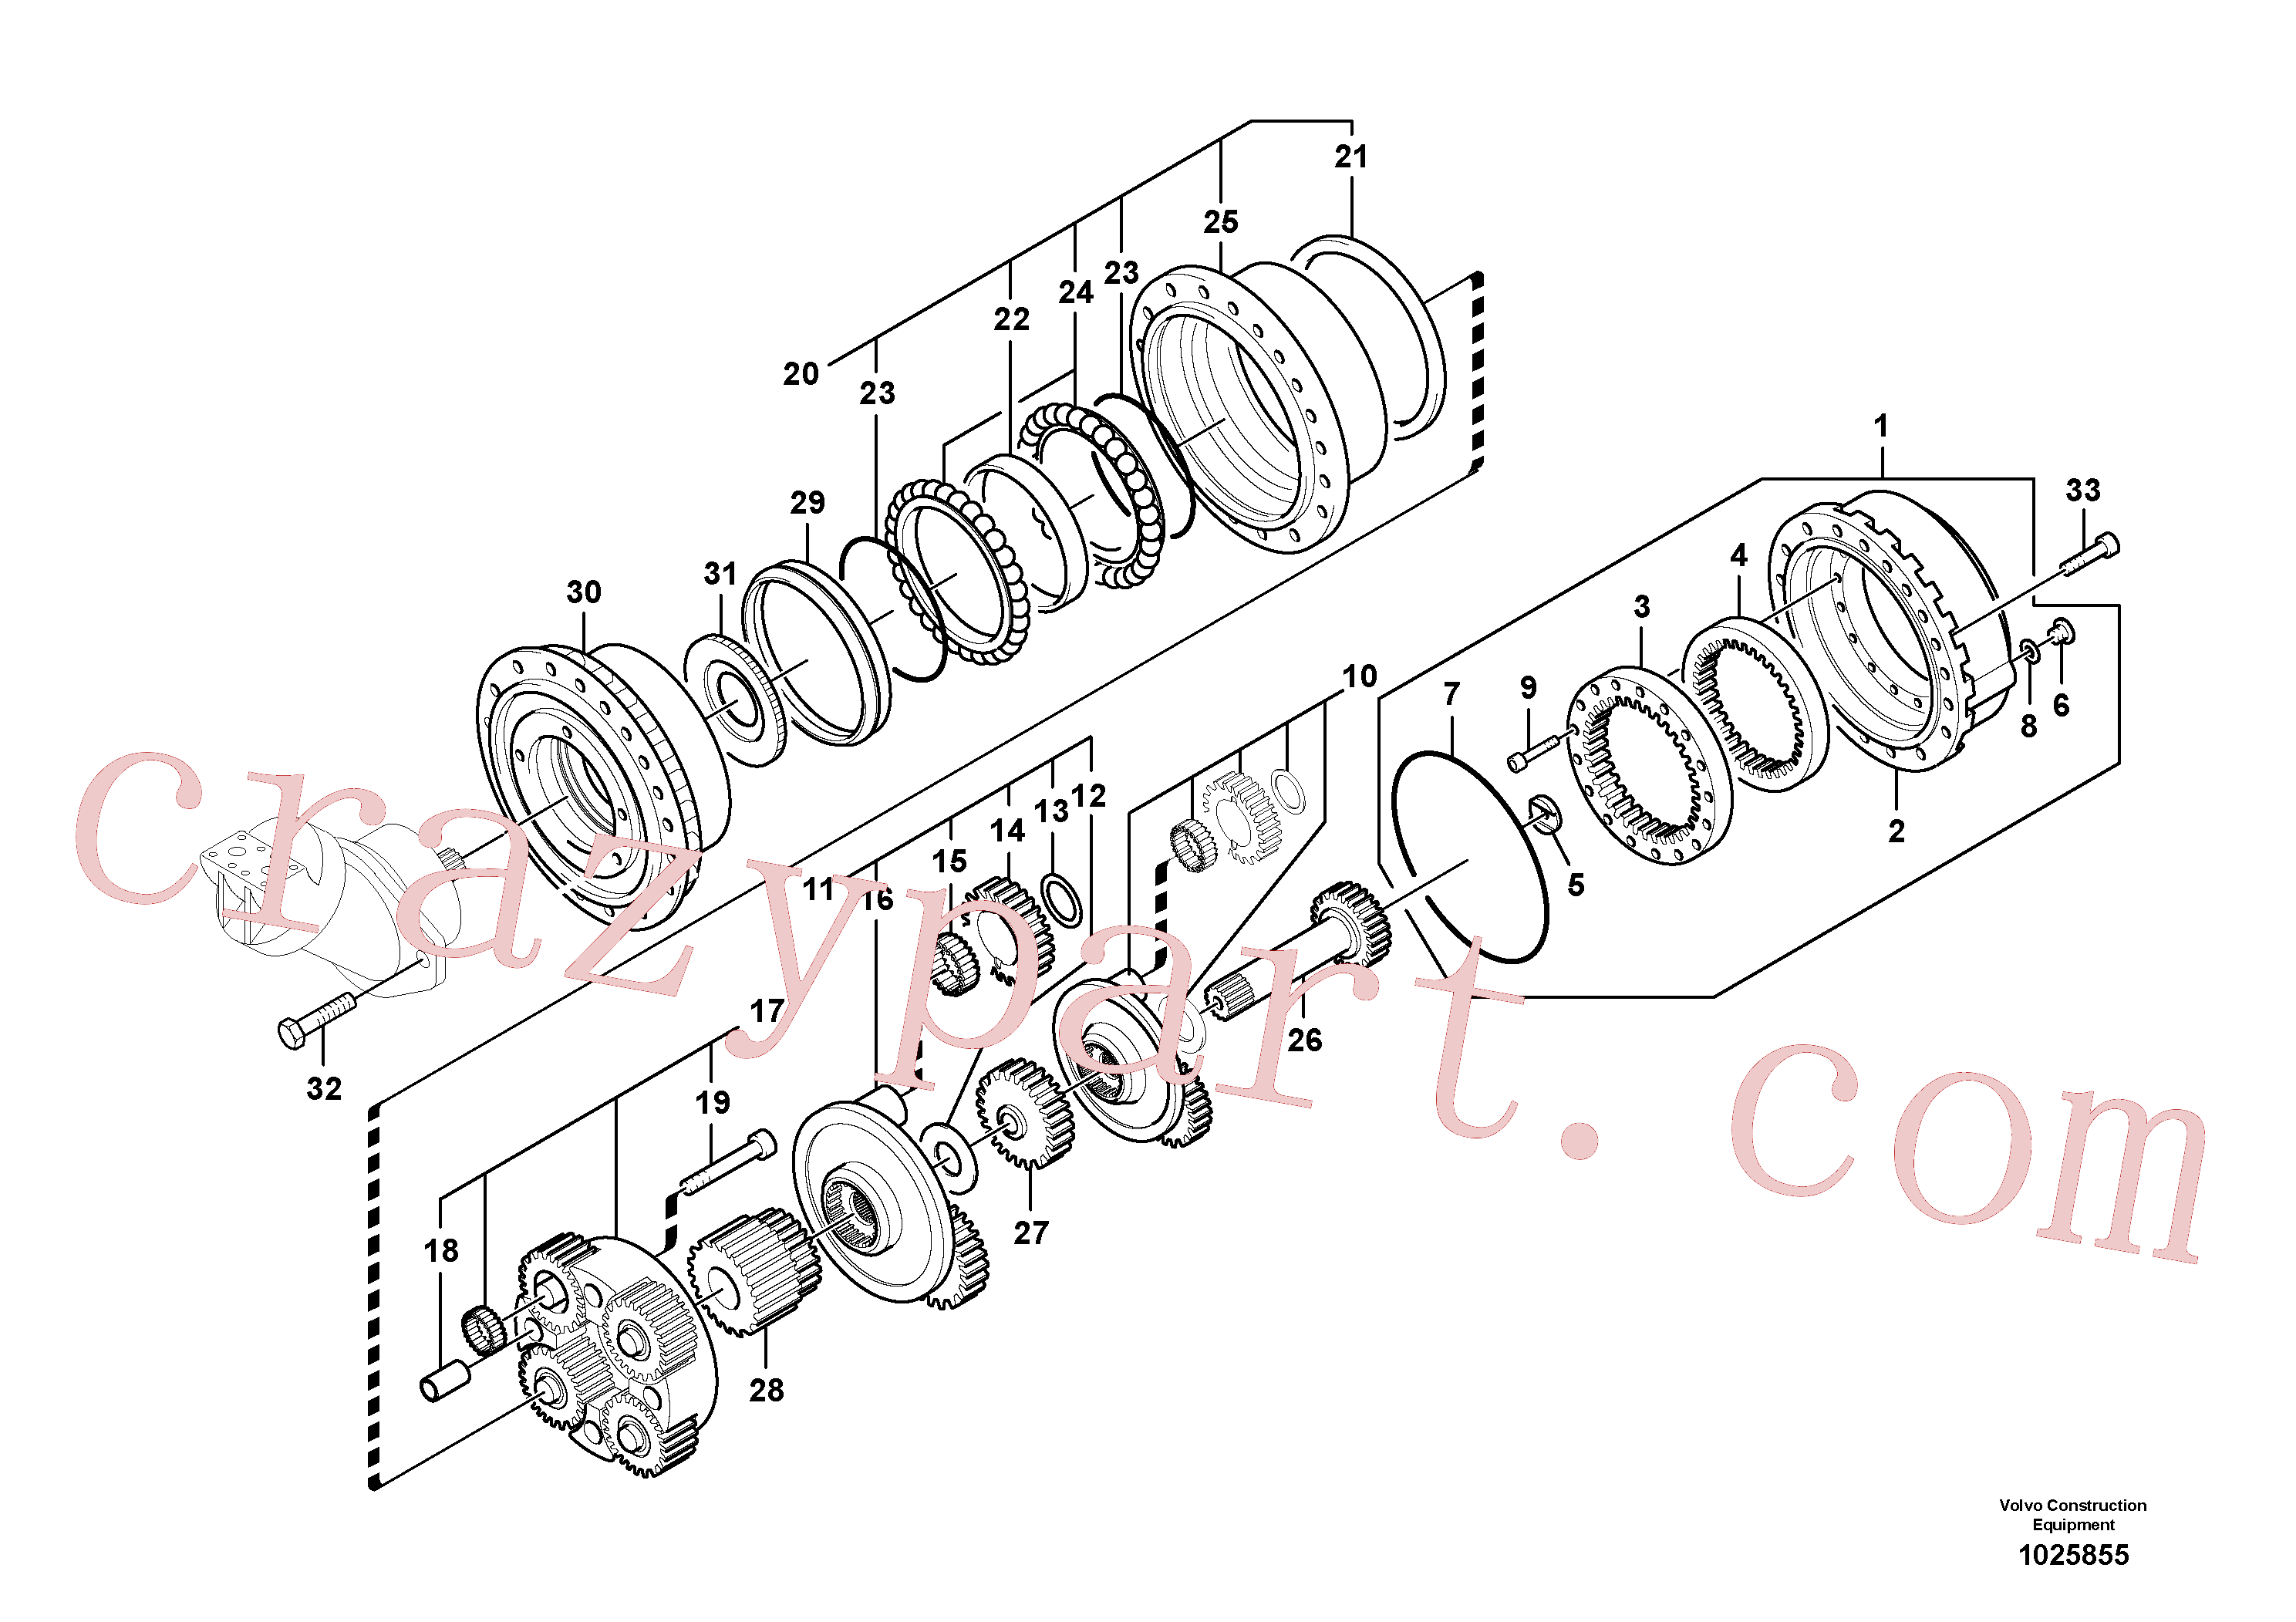 SA8230-22080 for Volvo Travel gearbox(1025855 assembly)